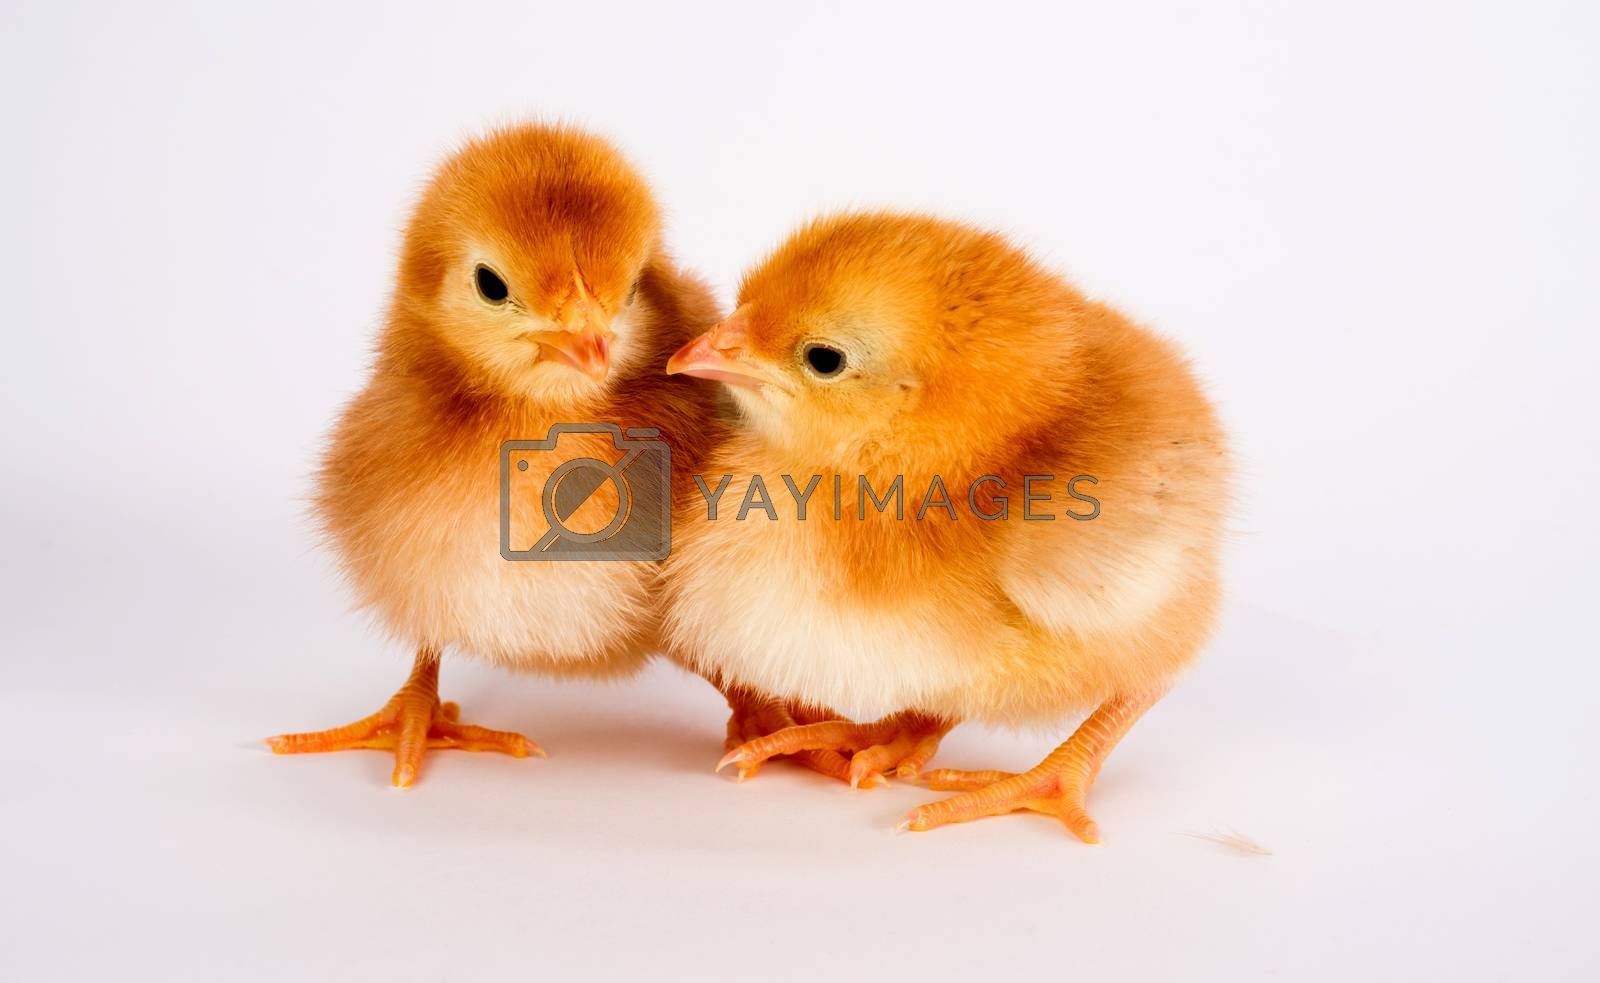 Royalty free image of Baby Chick Newborn Farm Chickens Standing White Rhode Island Red by ChrisBoswell